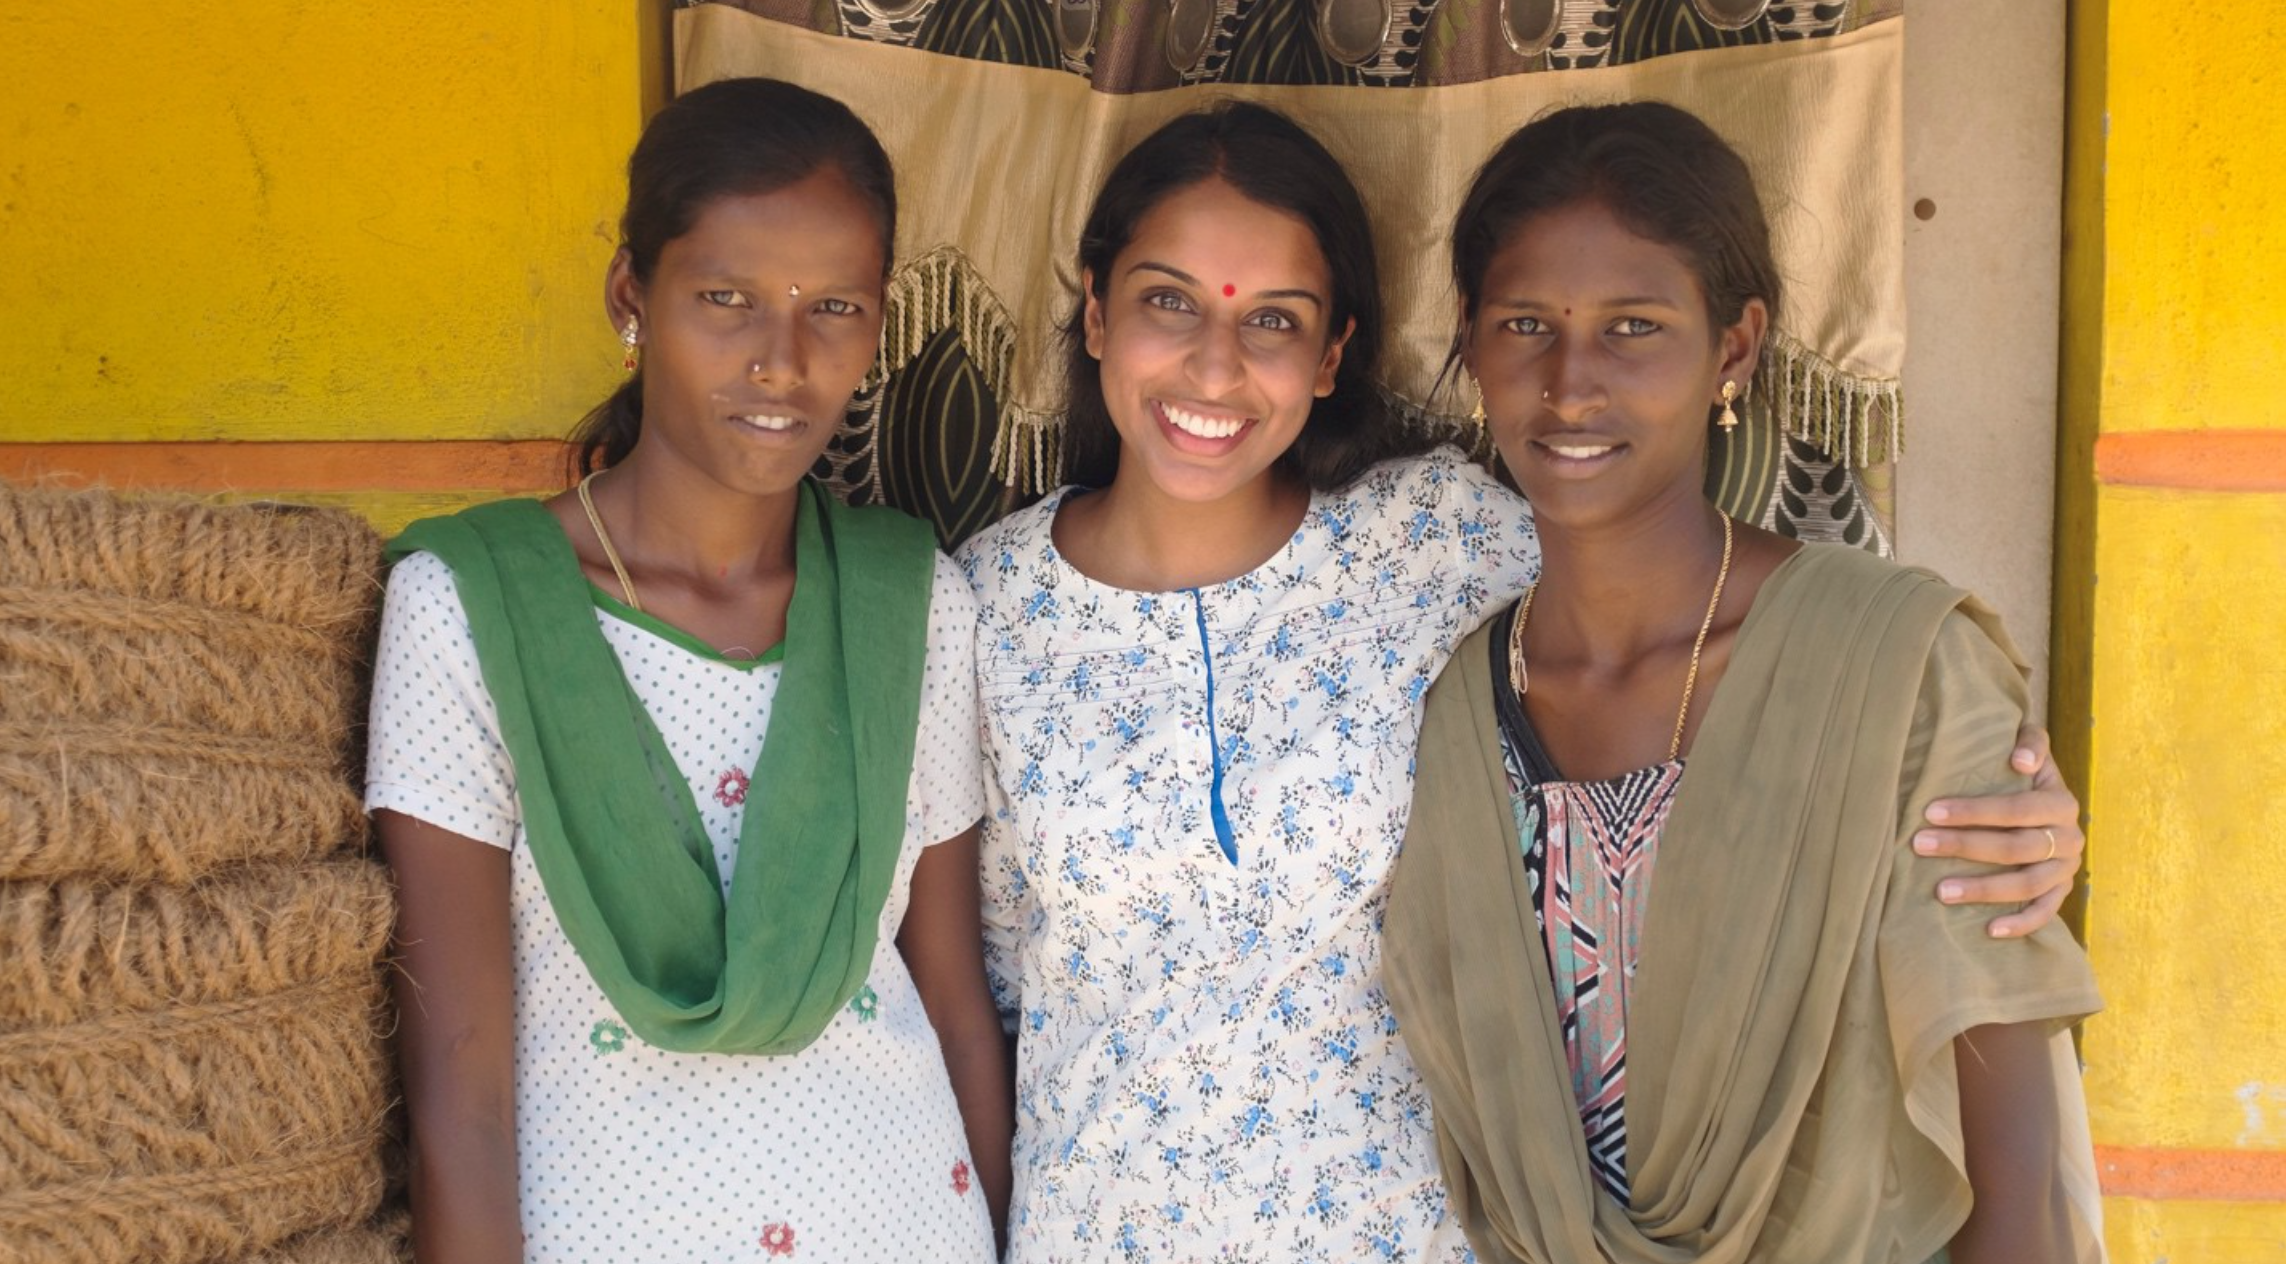 Sathya, her friend, and myself when I reconnected with them after two years. 2016.